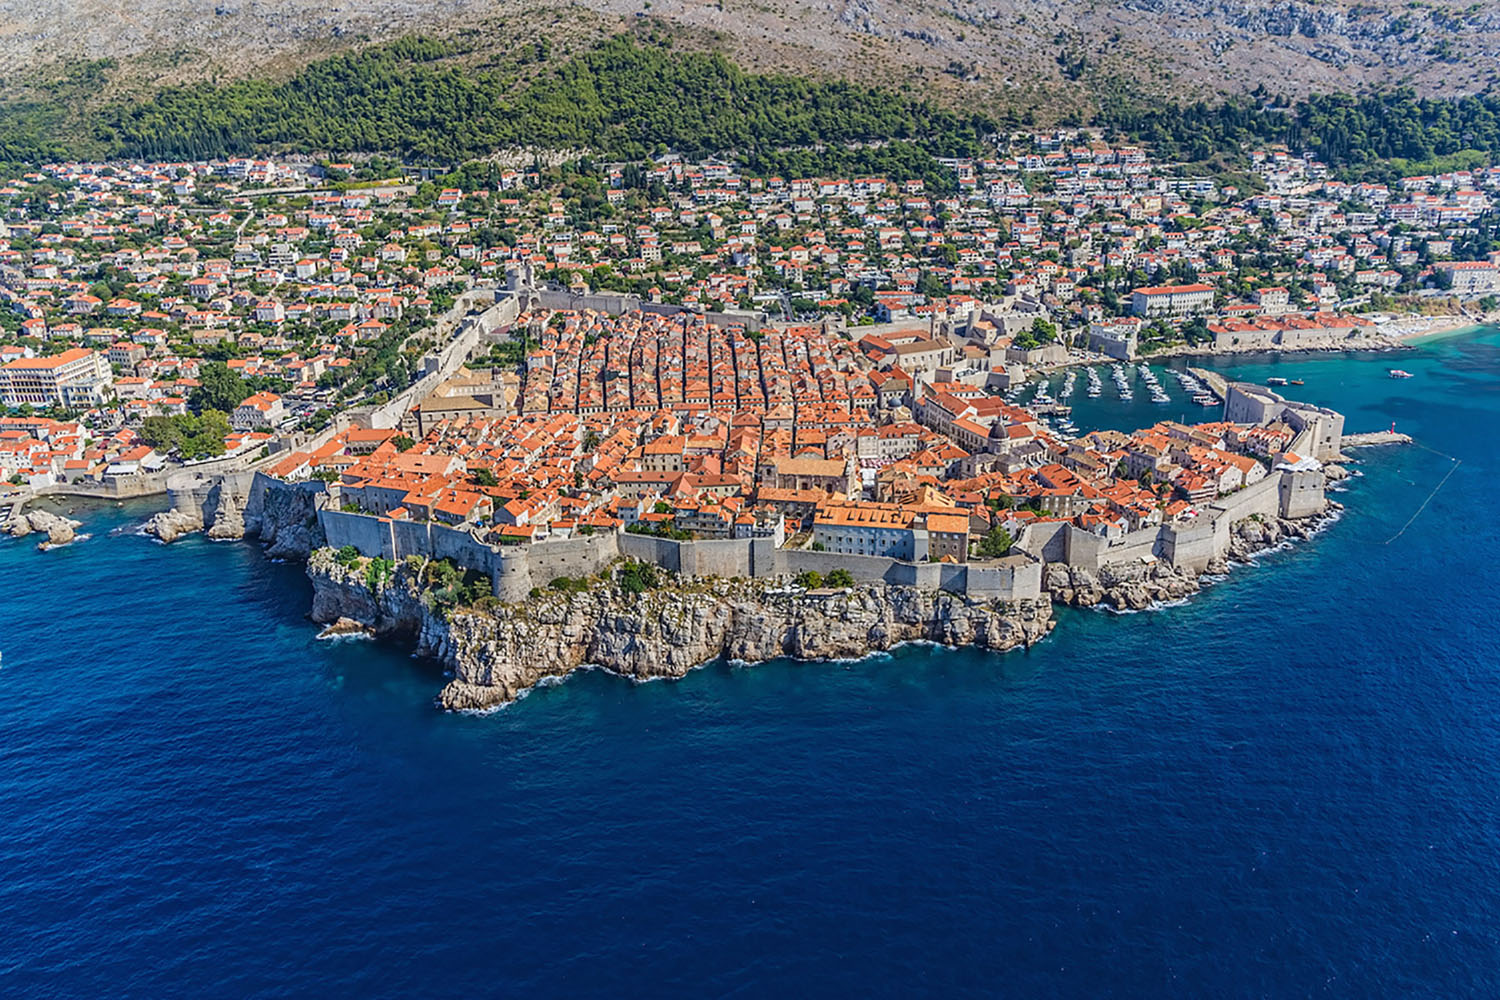 An aerial view of Dubrovnik, Croatia.